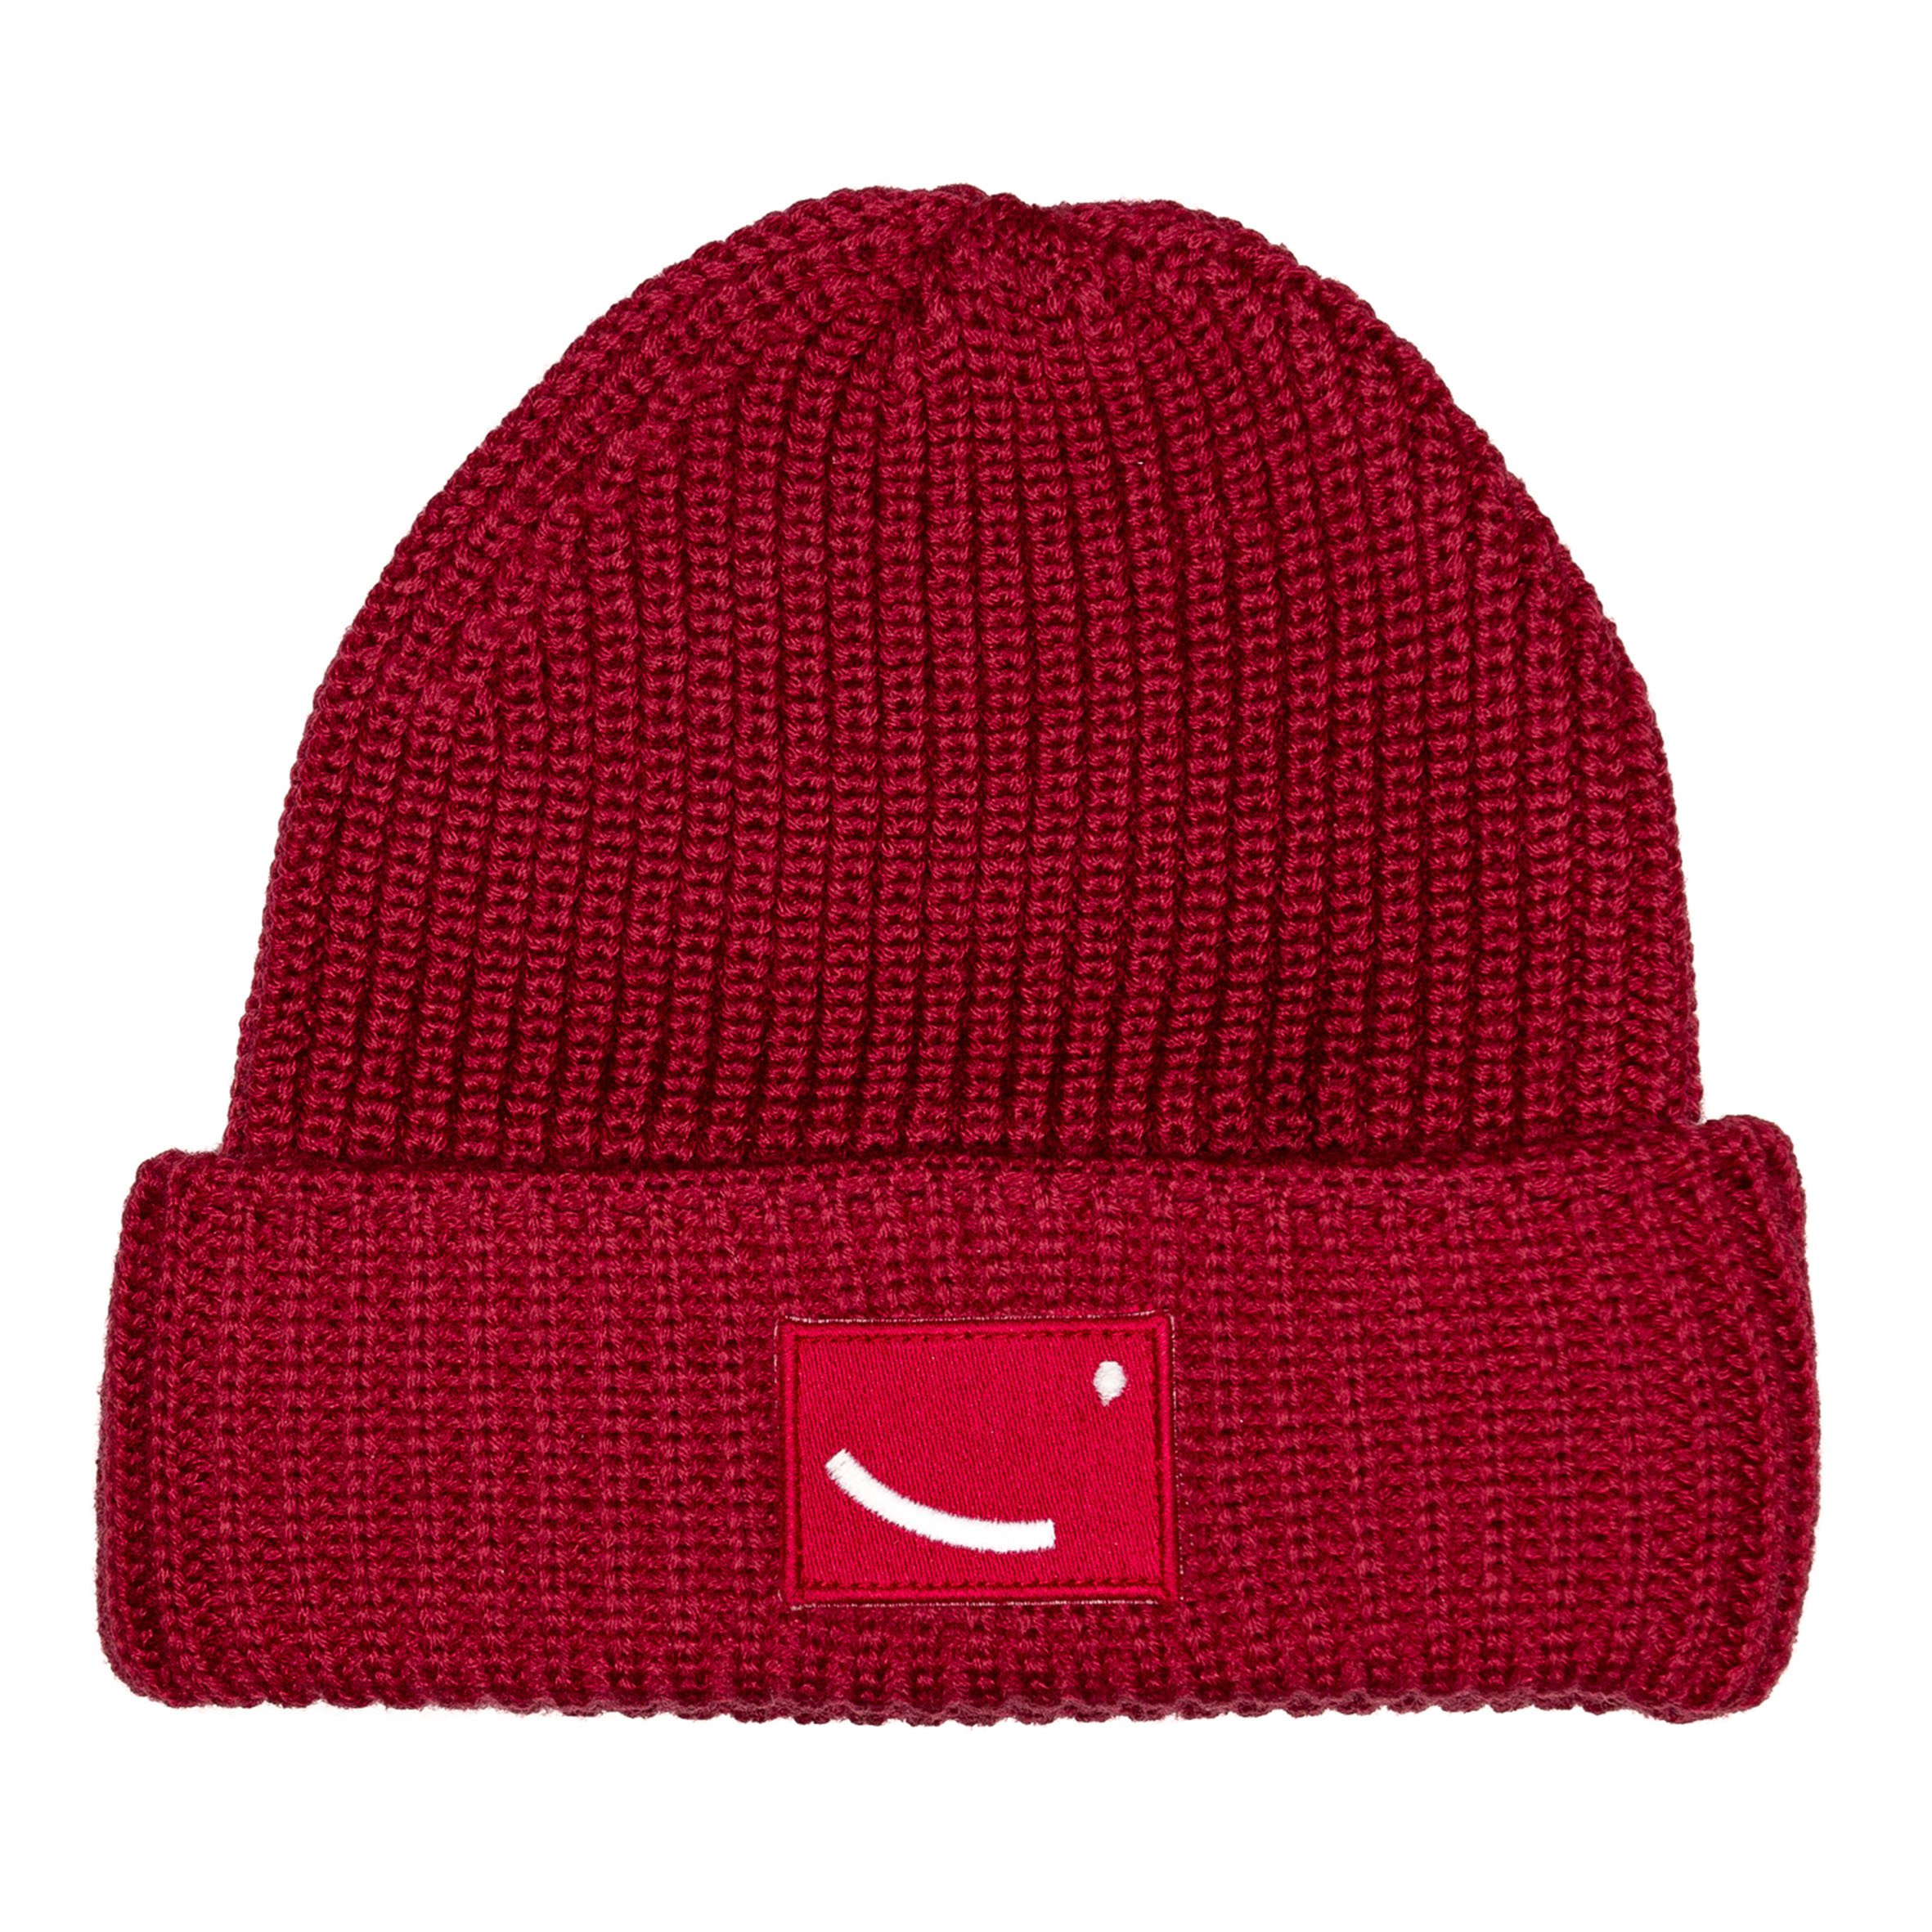 Merino Wool Beanie Luanda - Red from hatsup